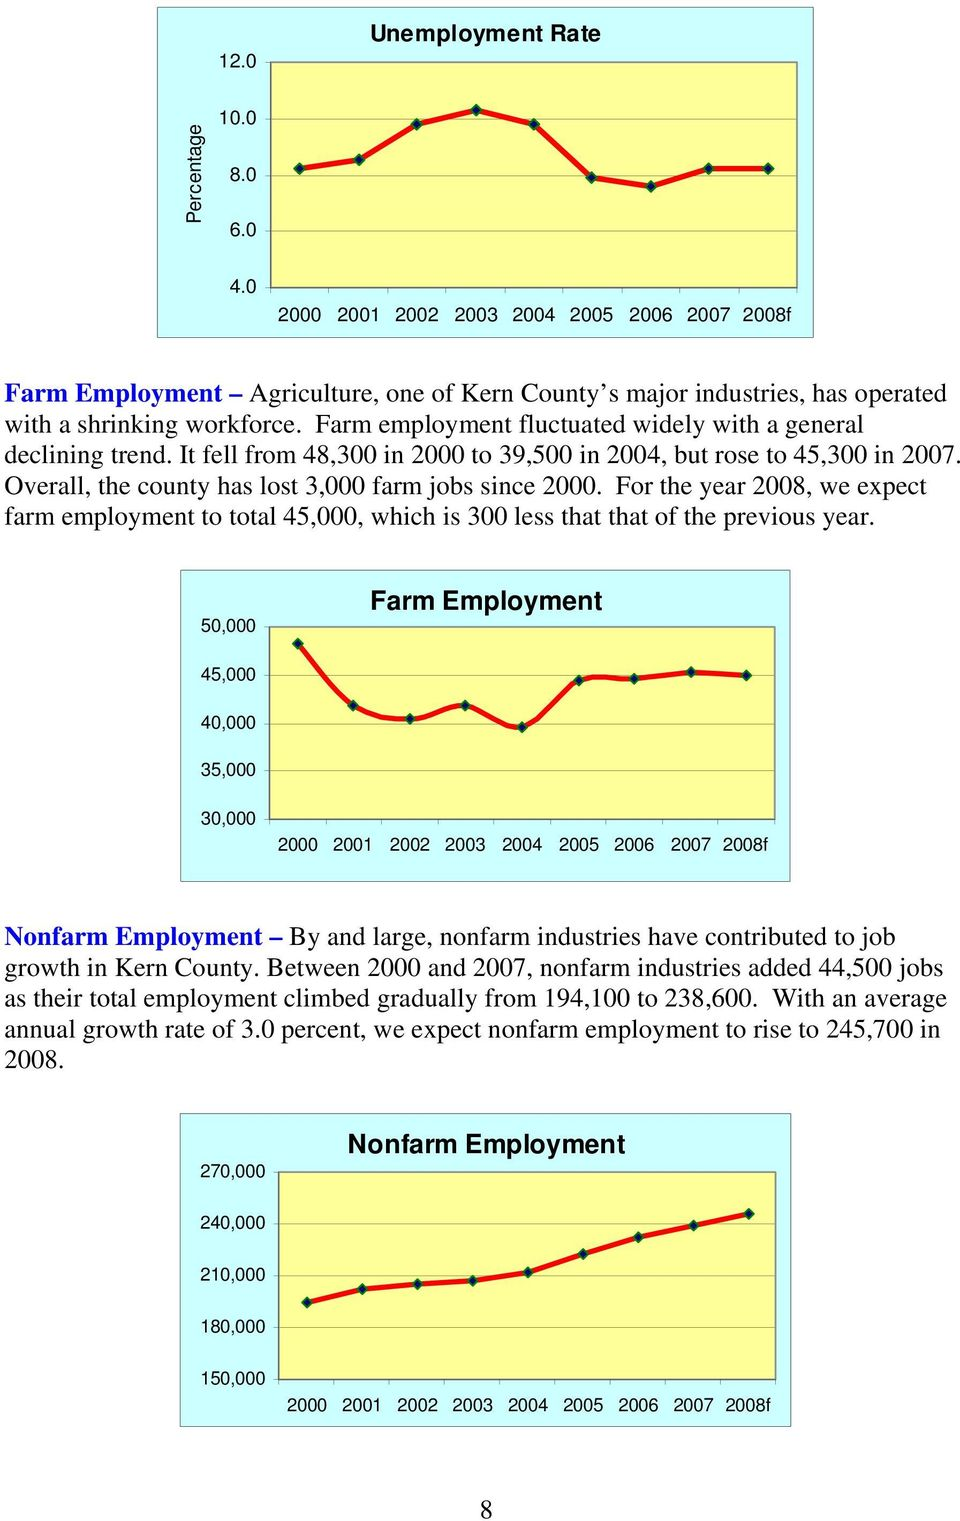 For the year 2008, we expect farm employment to total 45,000, which is 300 less that that of the previous year.